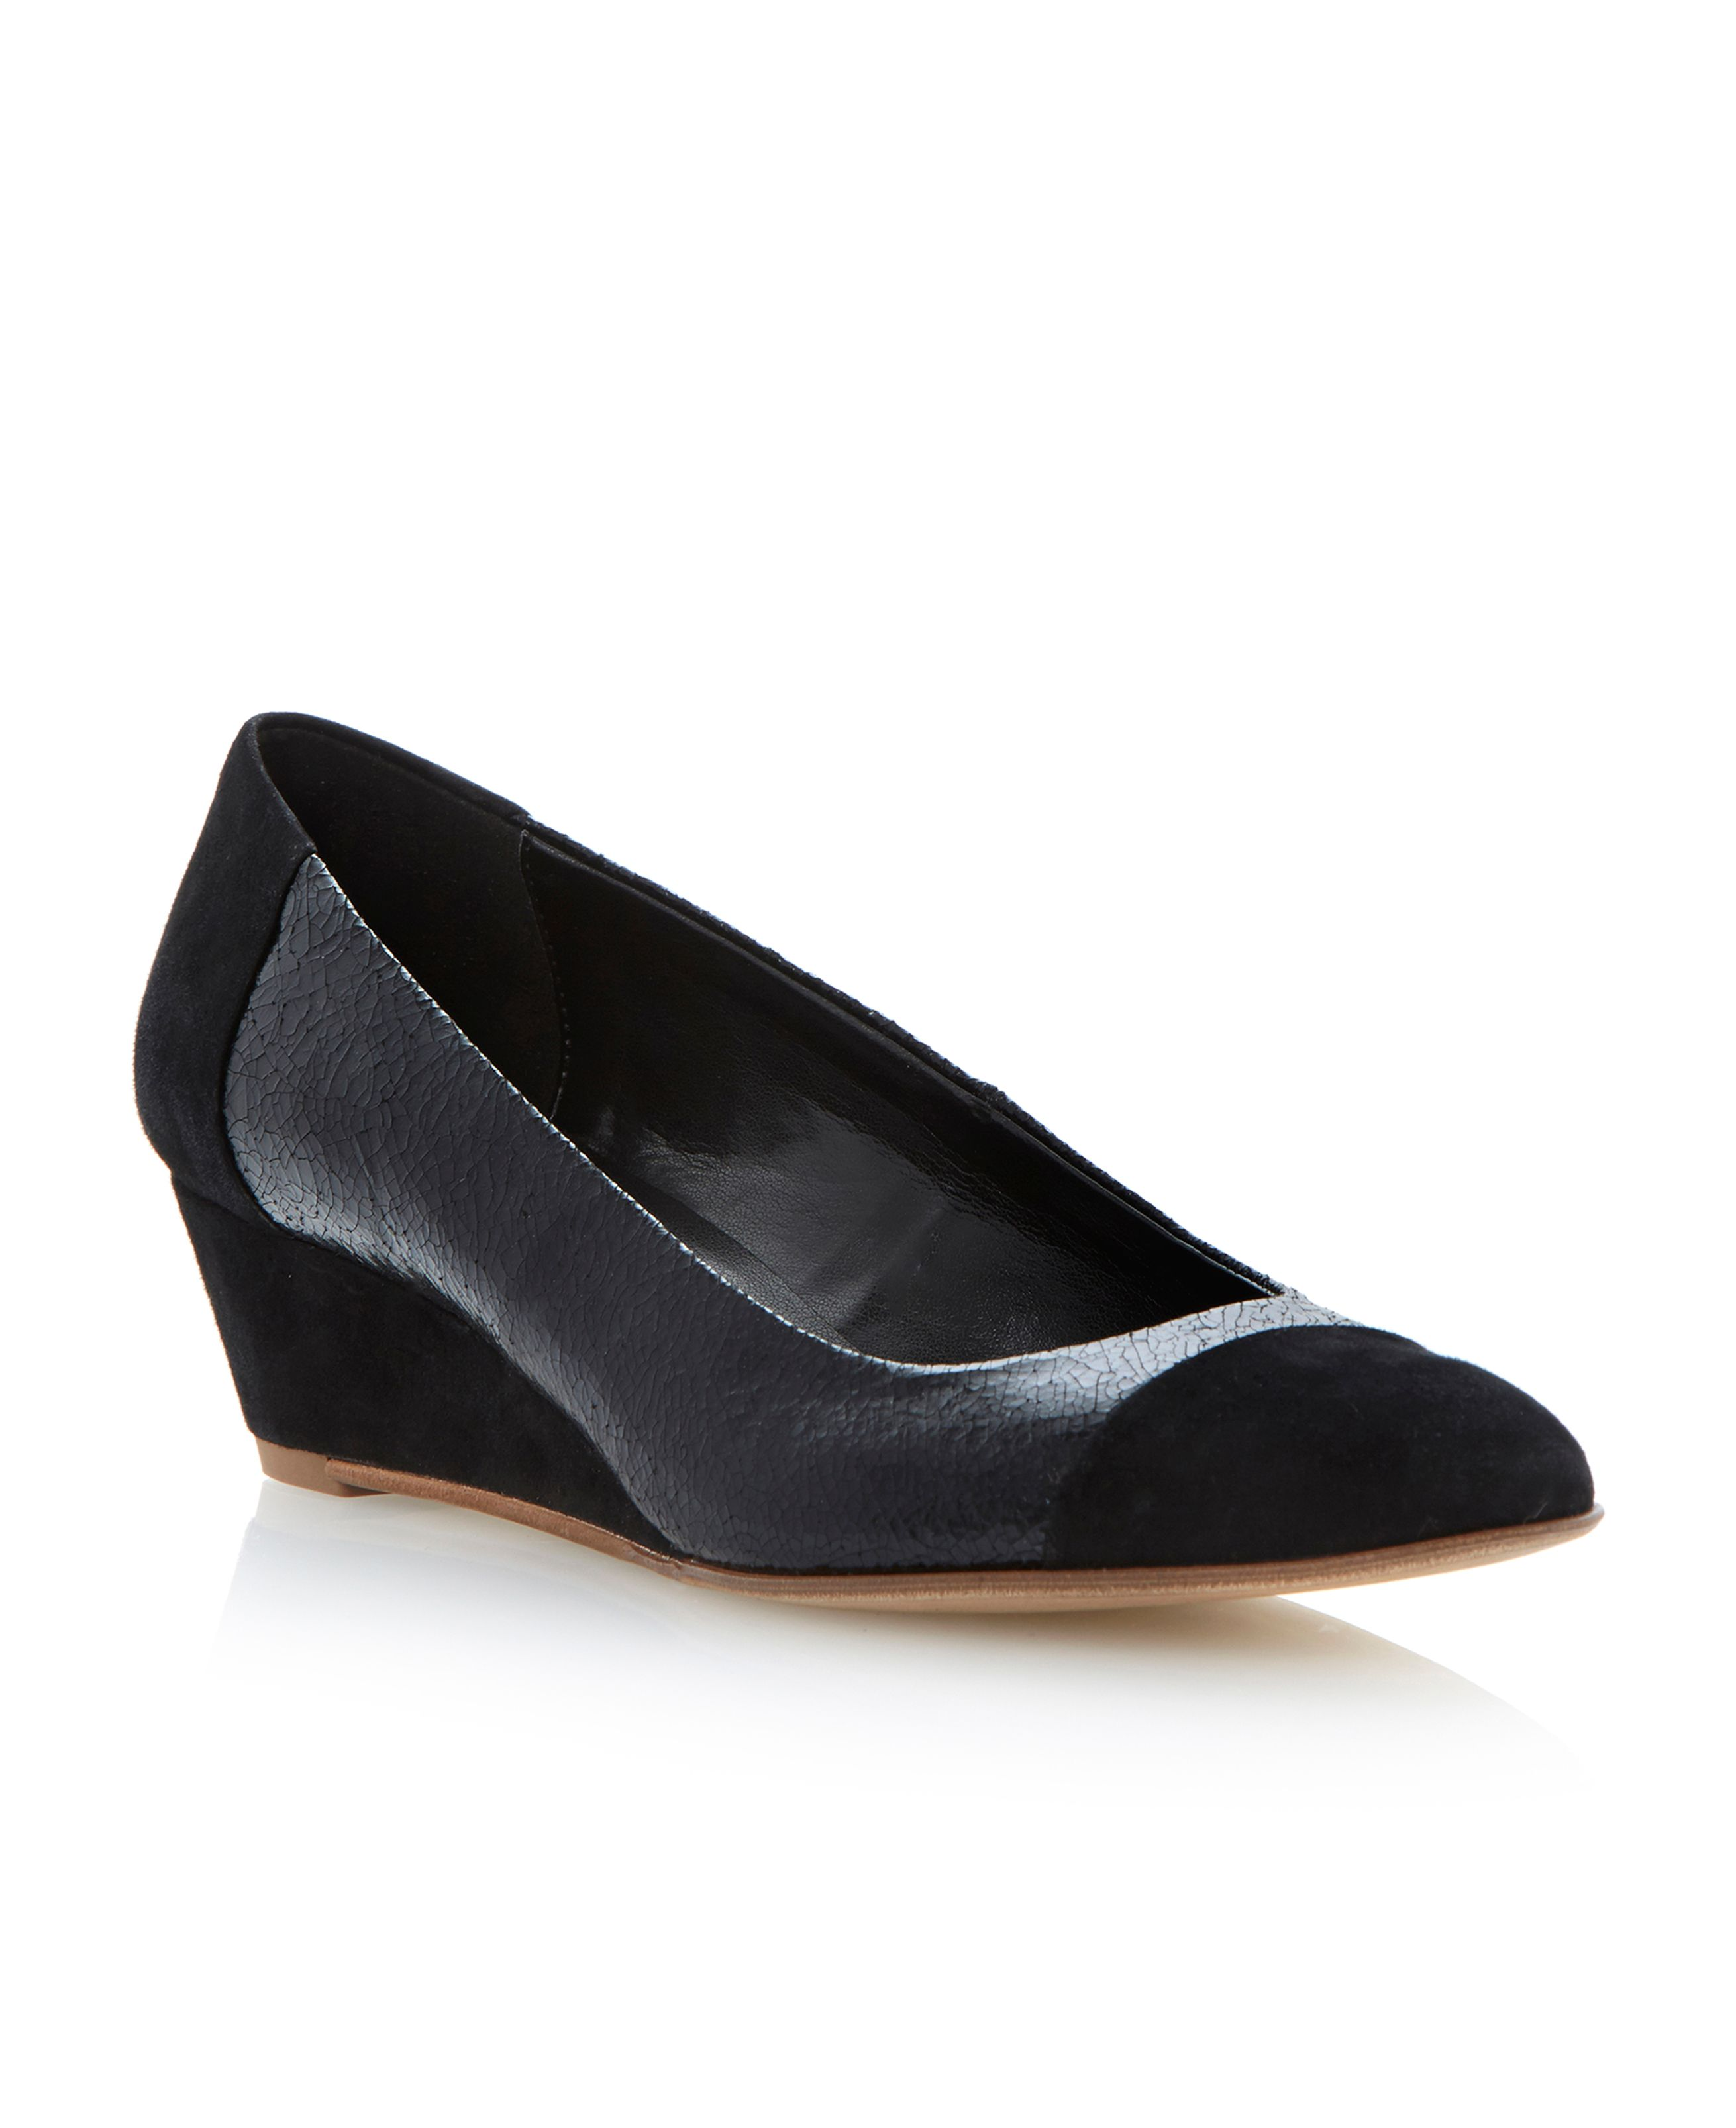 Alaine mix material mid wedge heel court shoes